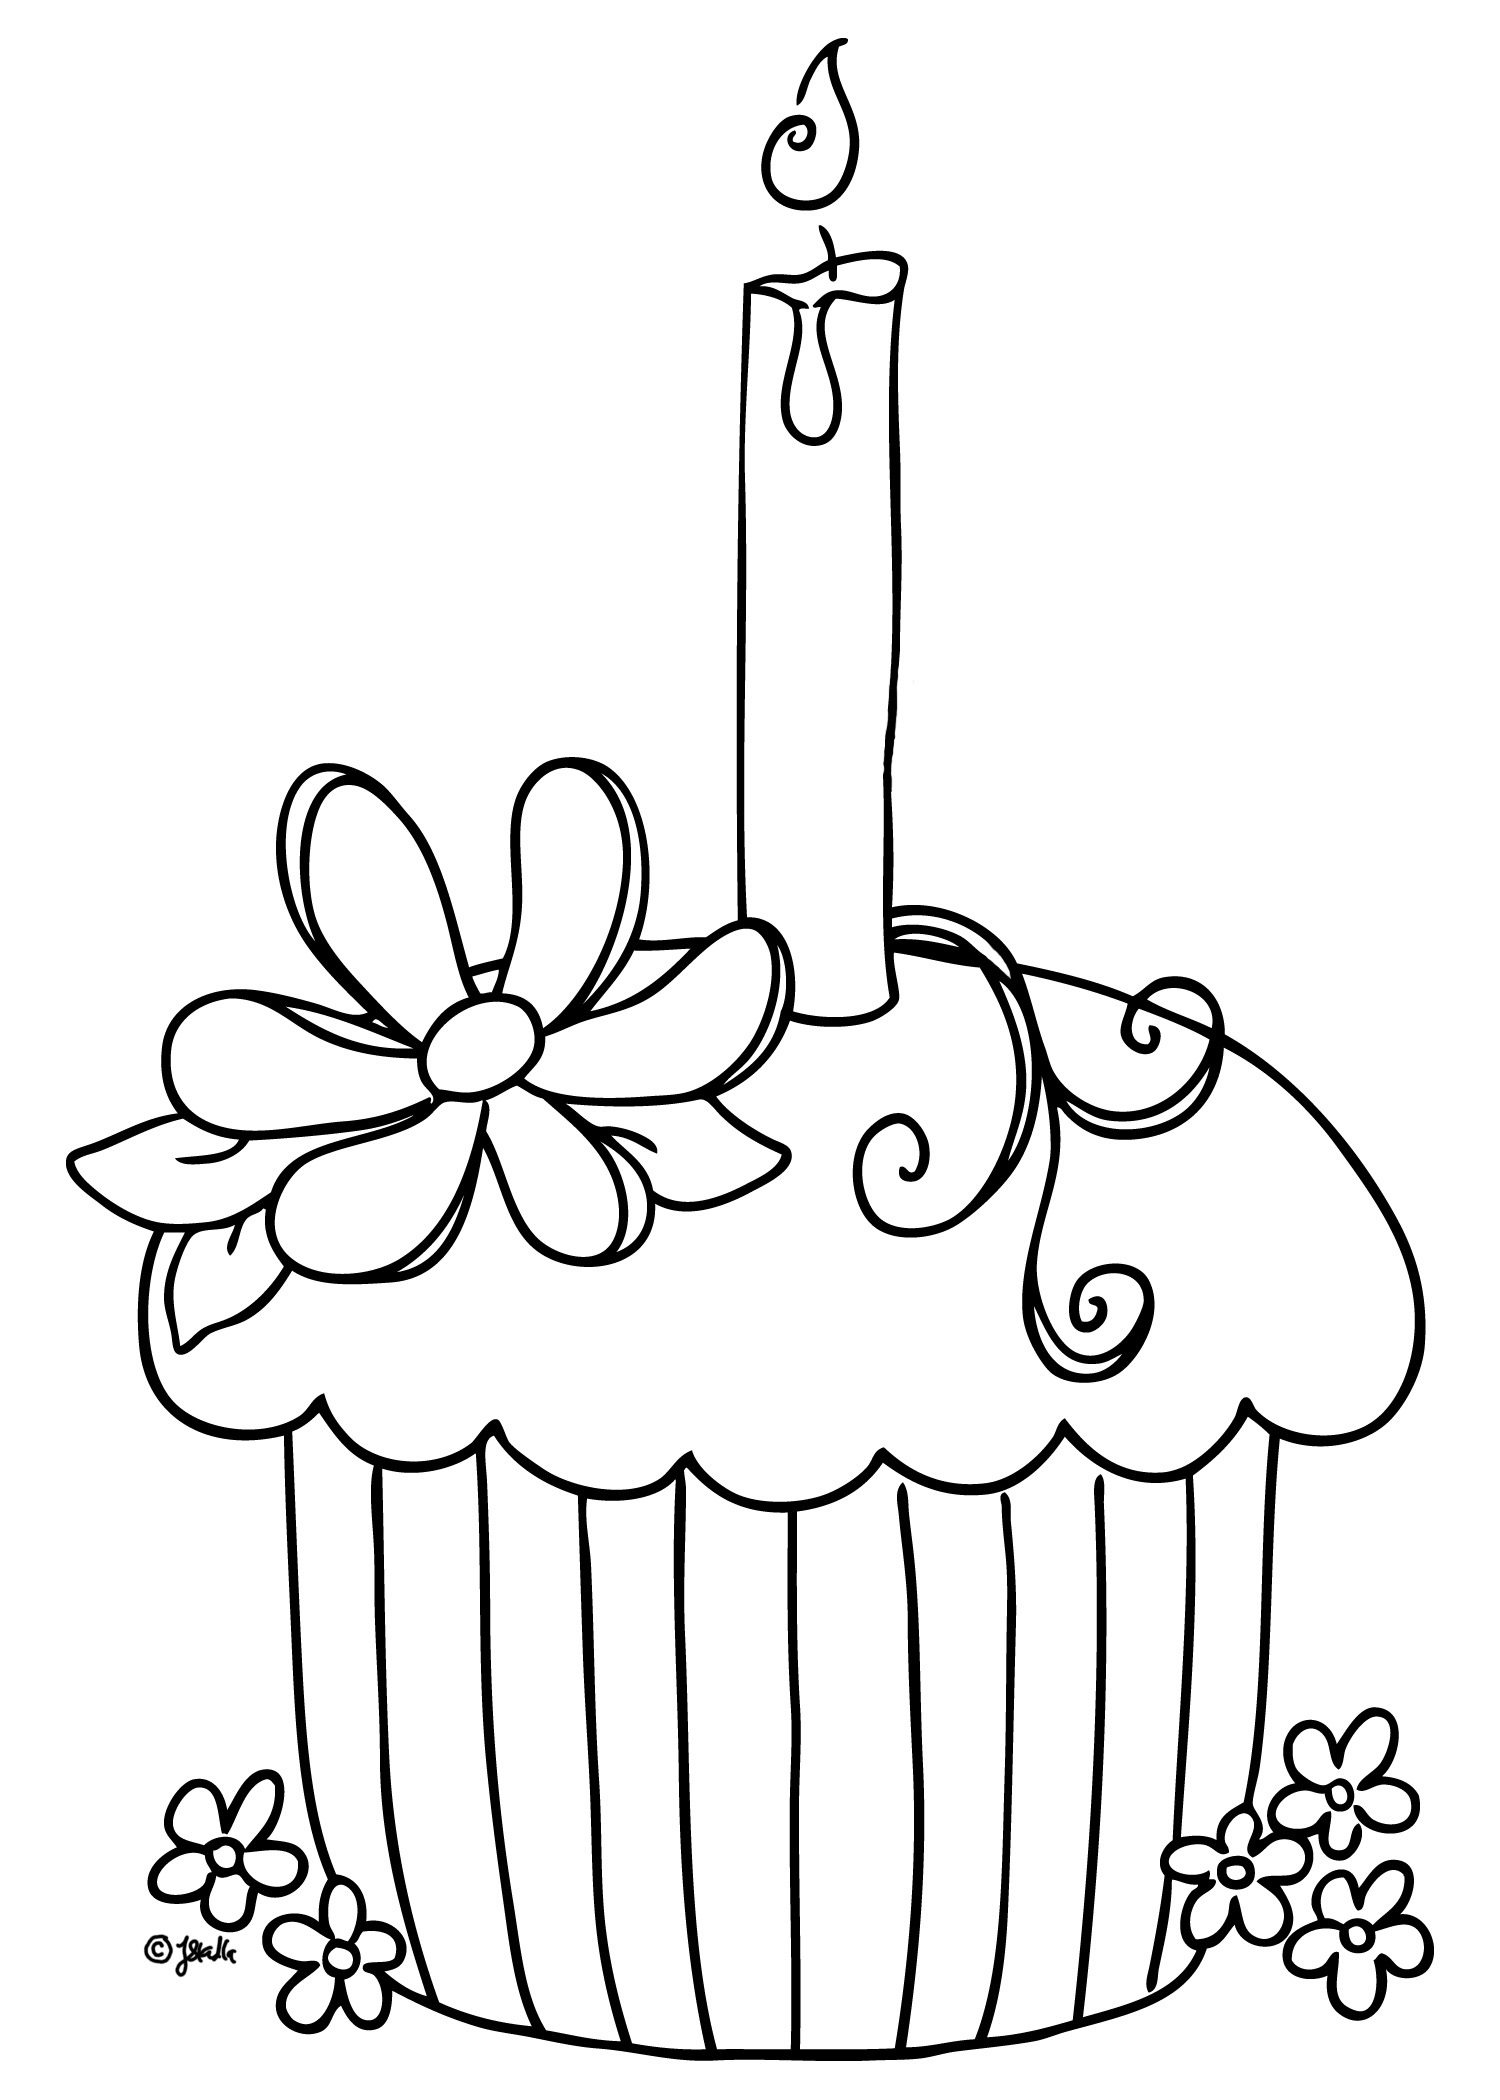 printable cupcake coloring pages free printable cupcake coloring pages for kids printable coloring pages cupcake